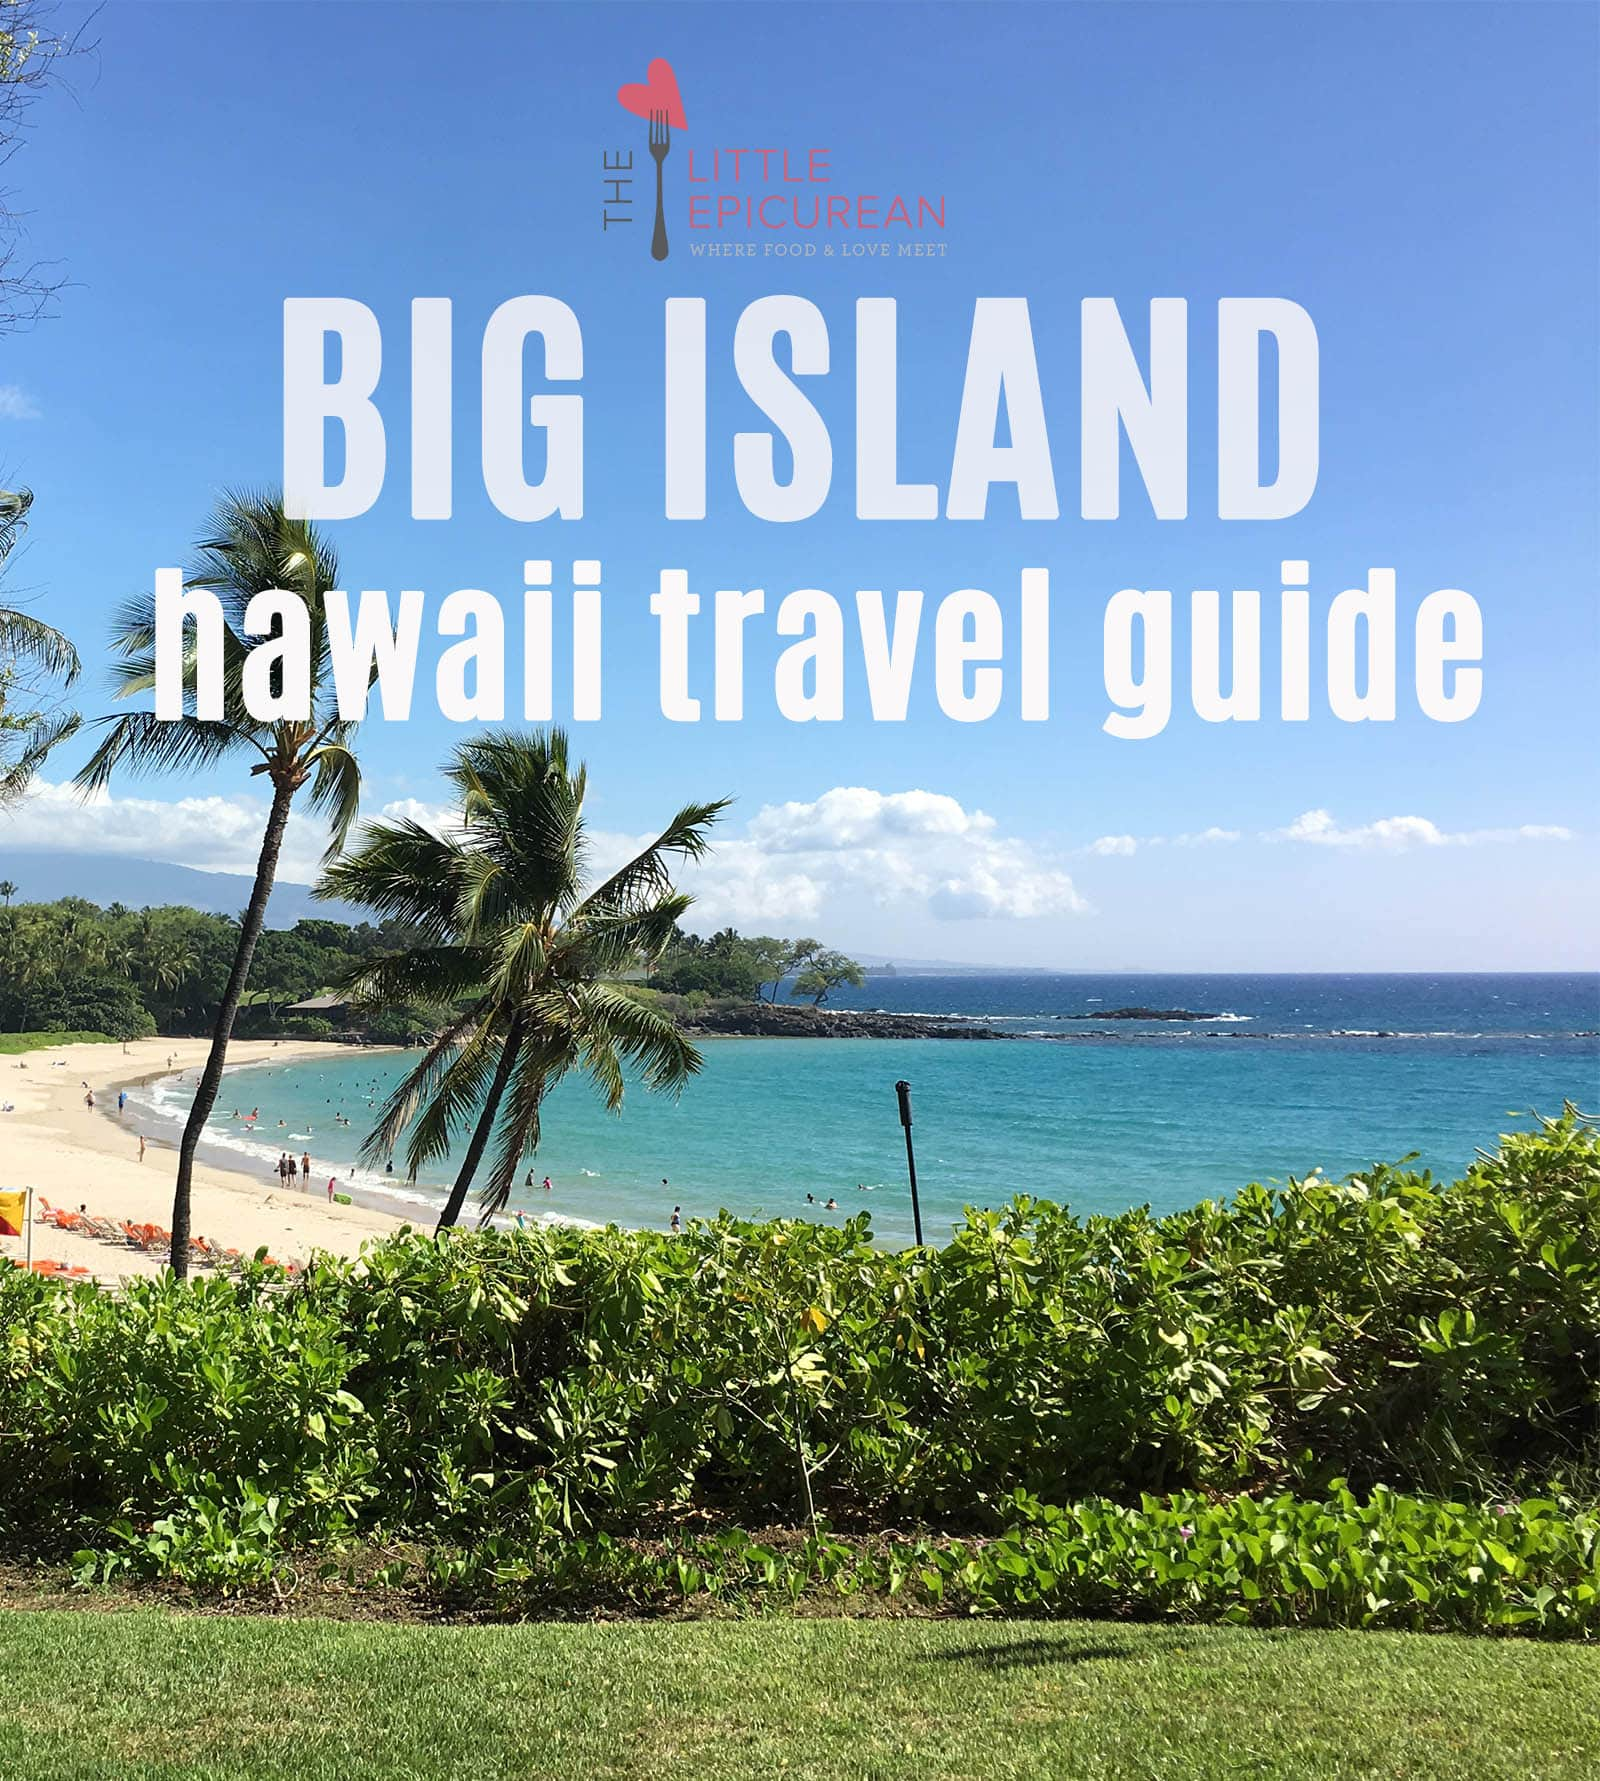 Big Island Hawaii Travel Guide: What to eat, see, and do